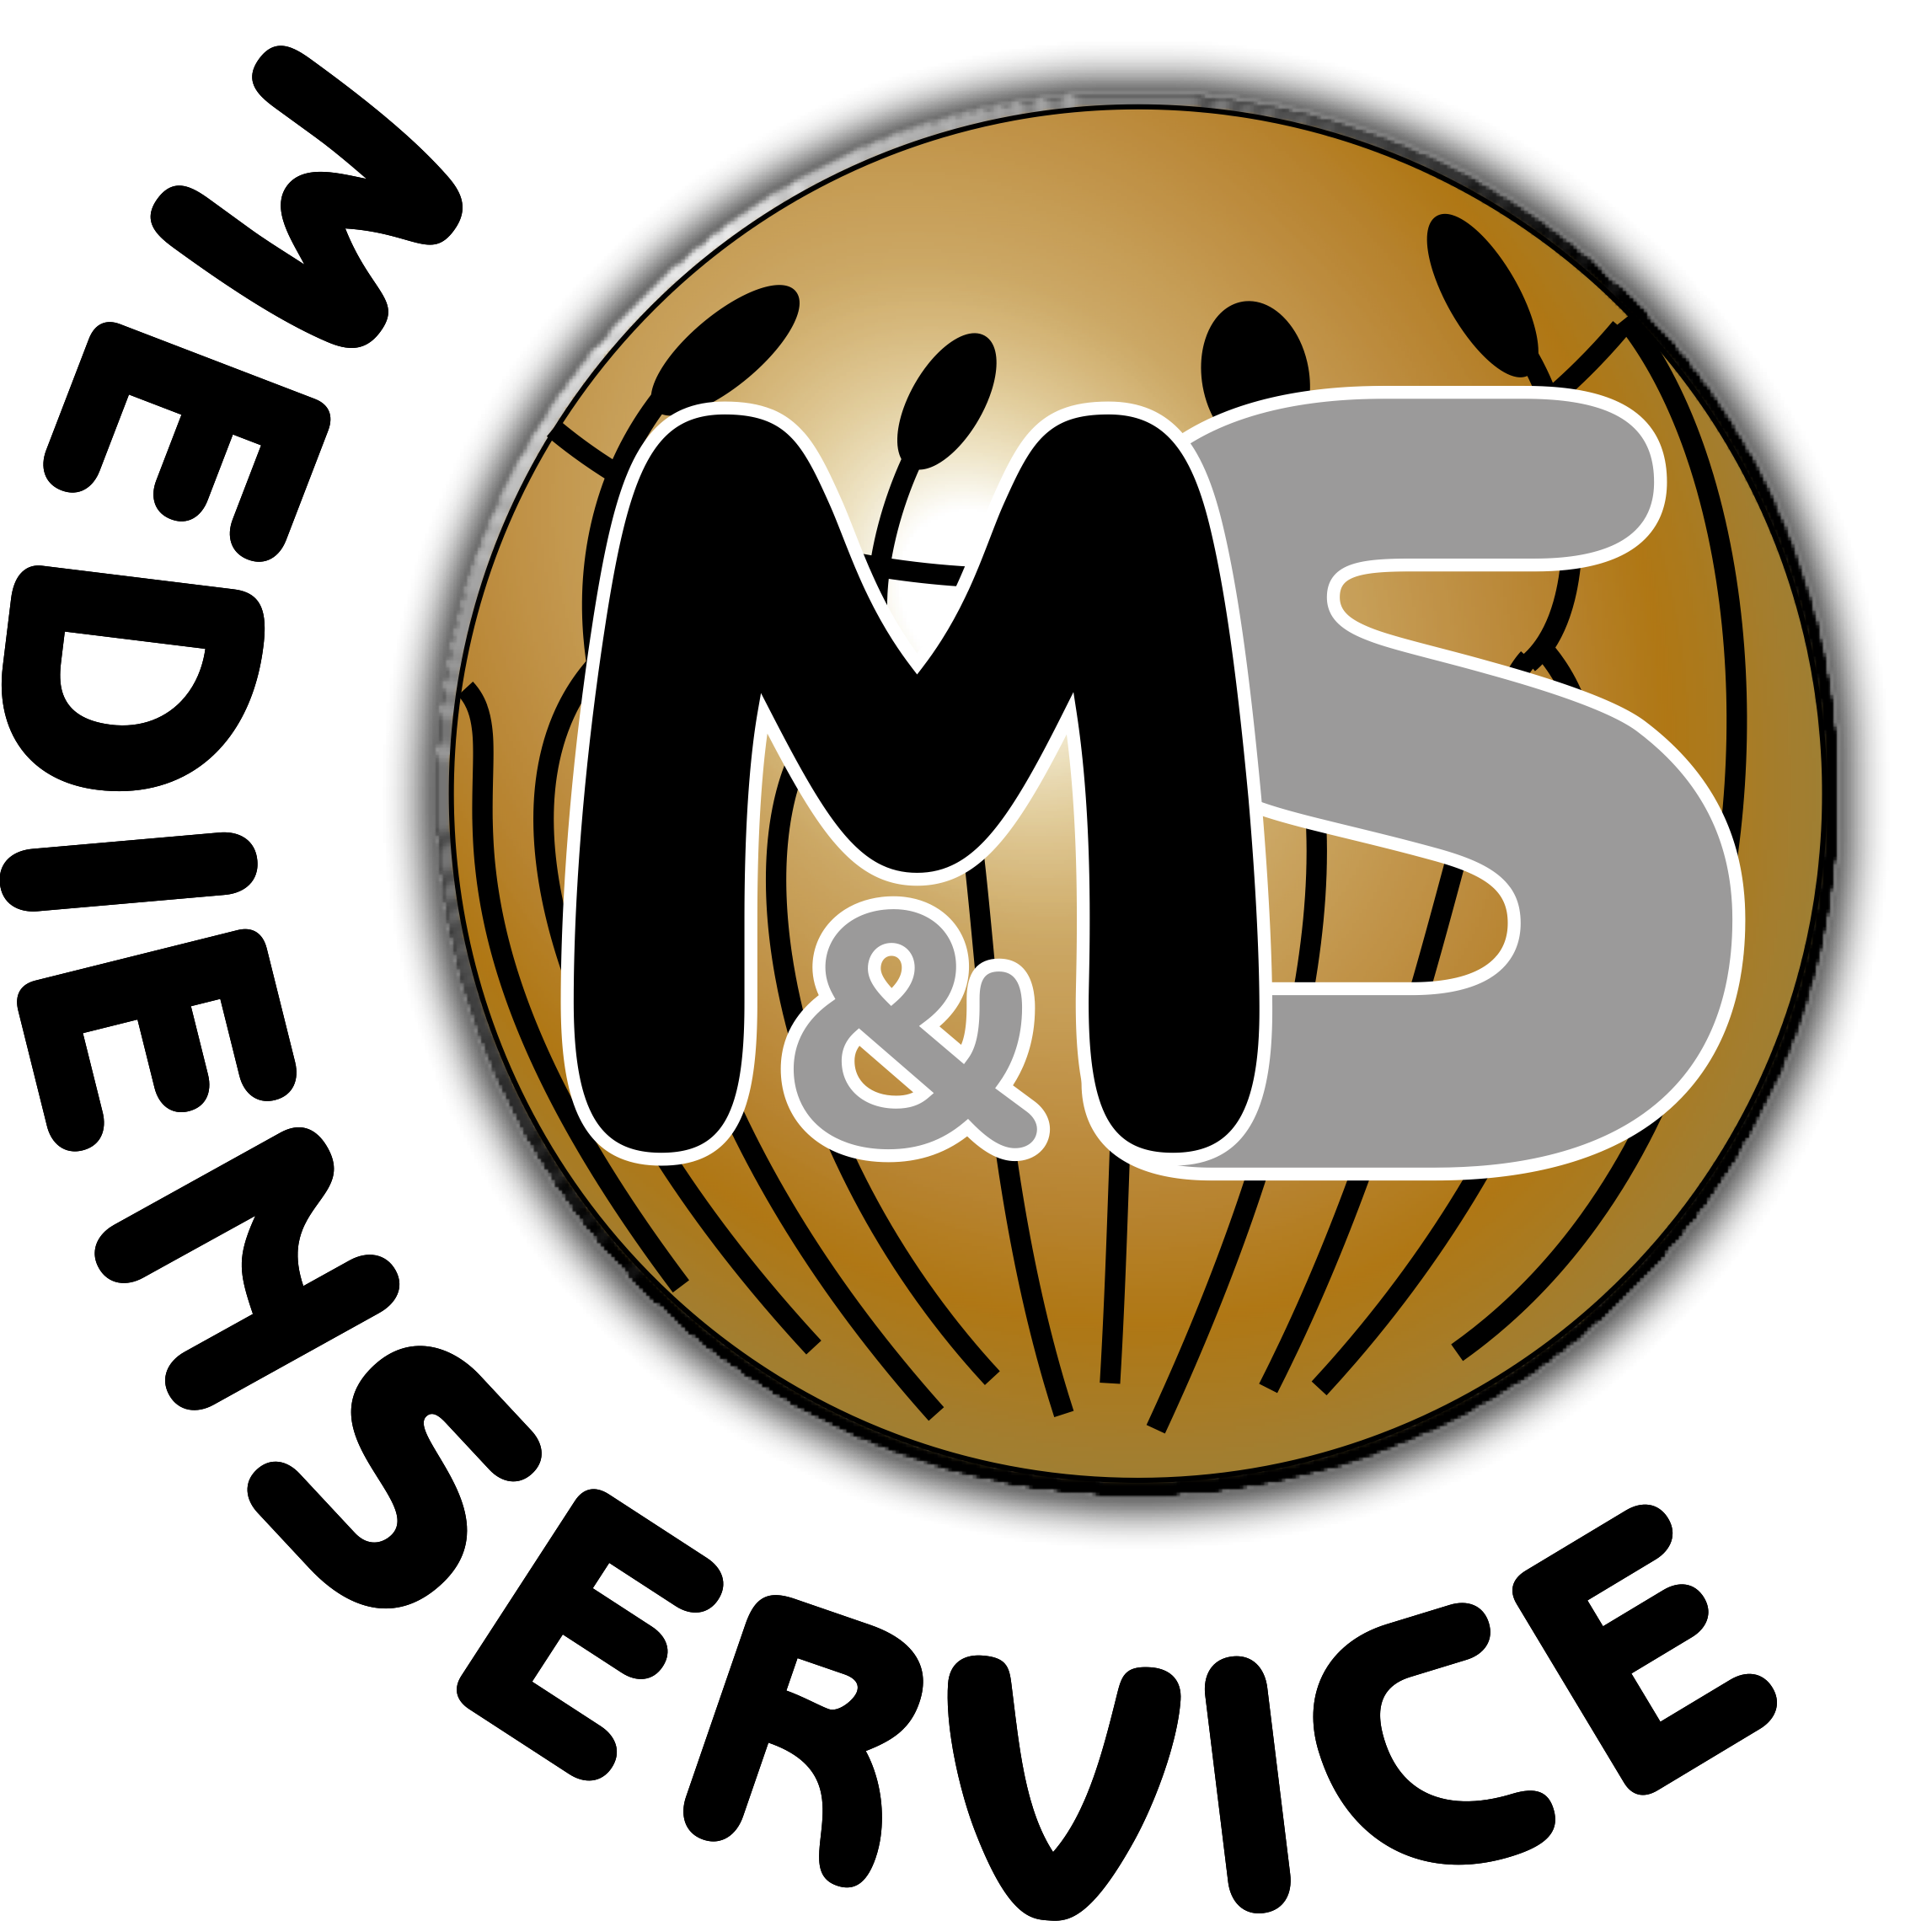 MS-Medienservice